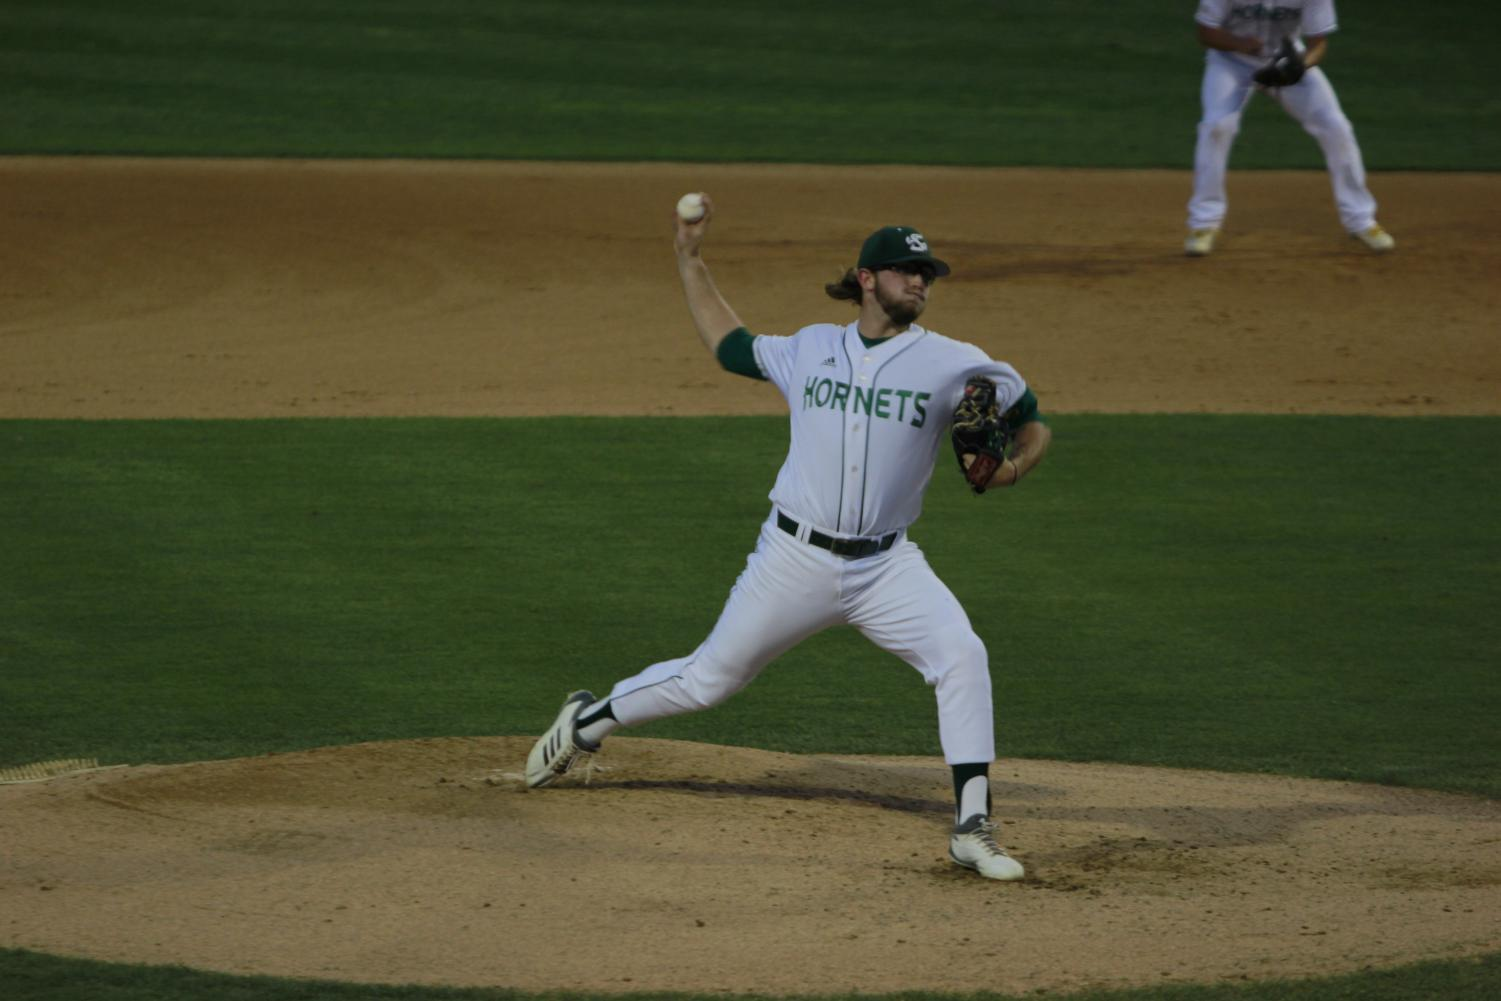 Sac State junior pitcher Austin Roberts throws a pitch in a 6-0 victory against Cal on March 26, 2019 at John Smith Field. Roberts was selected by the Pittsburgh Pirates in the eighth round of the 2019 MLB Draft.